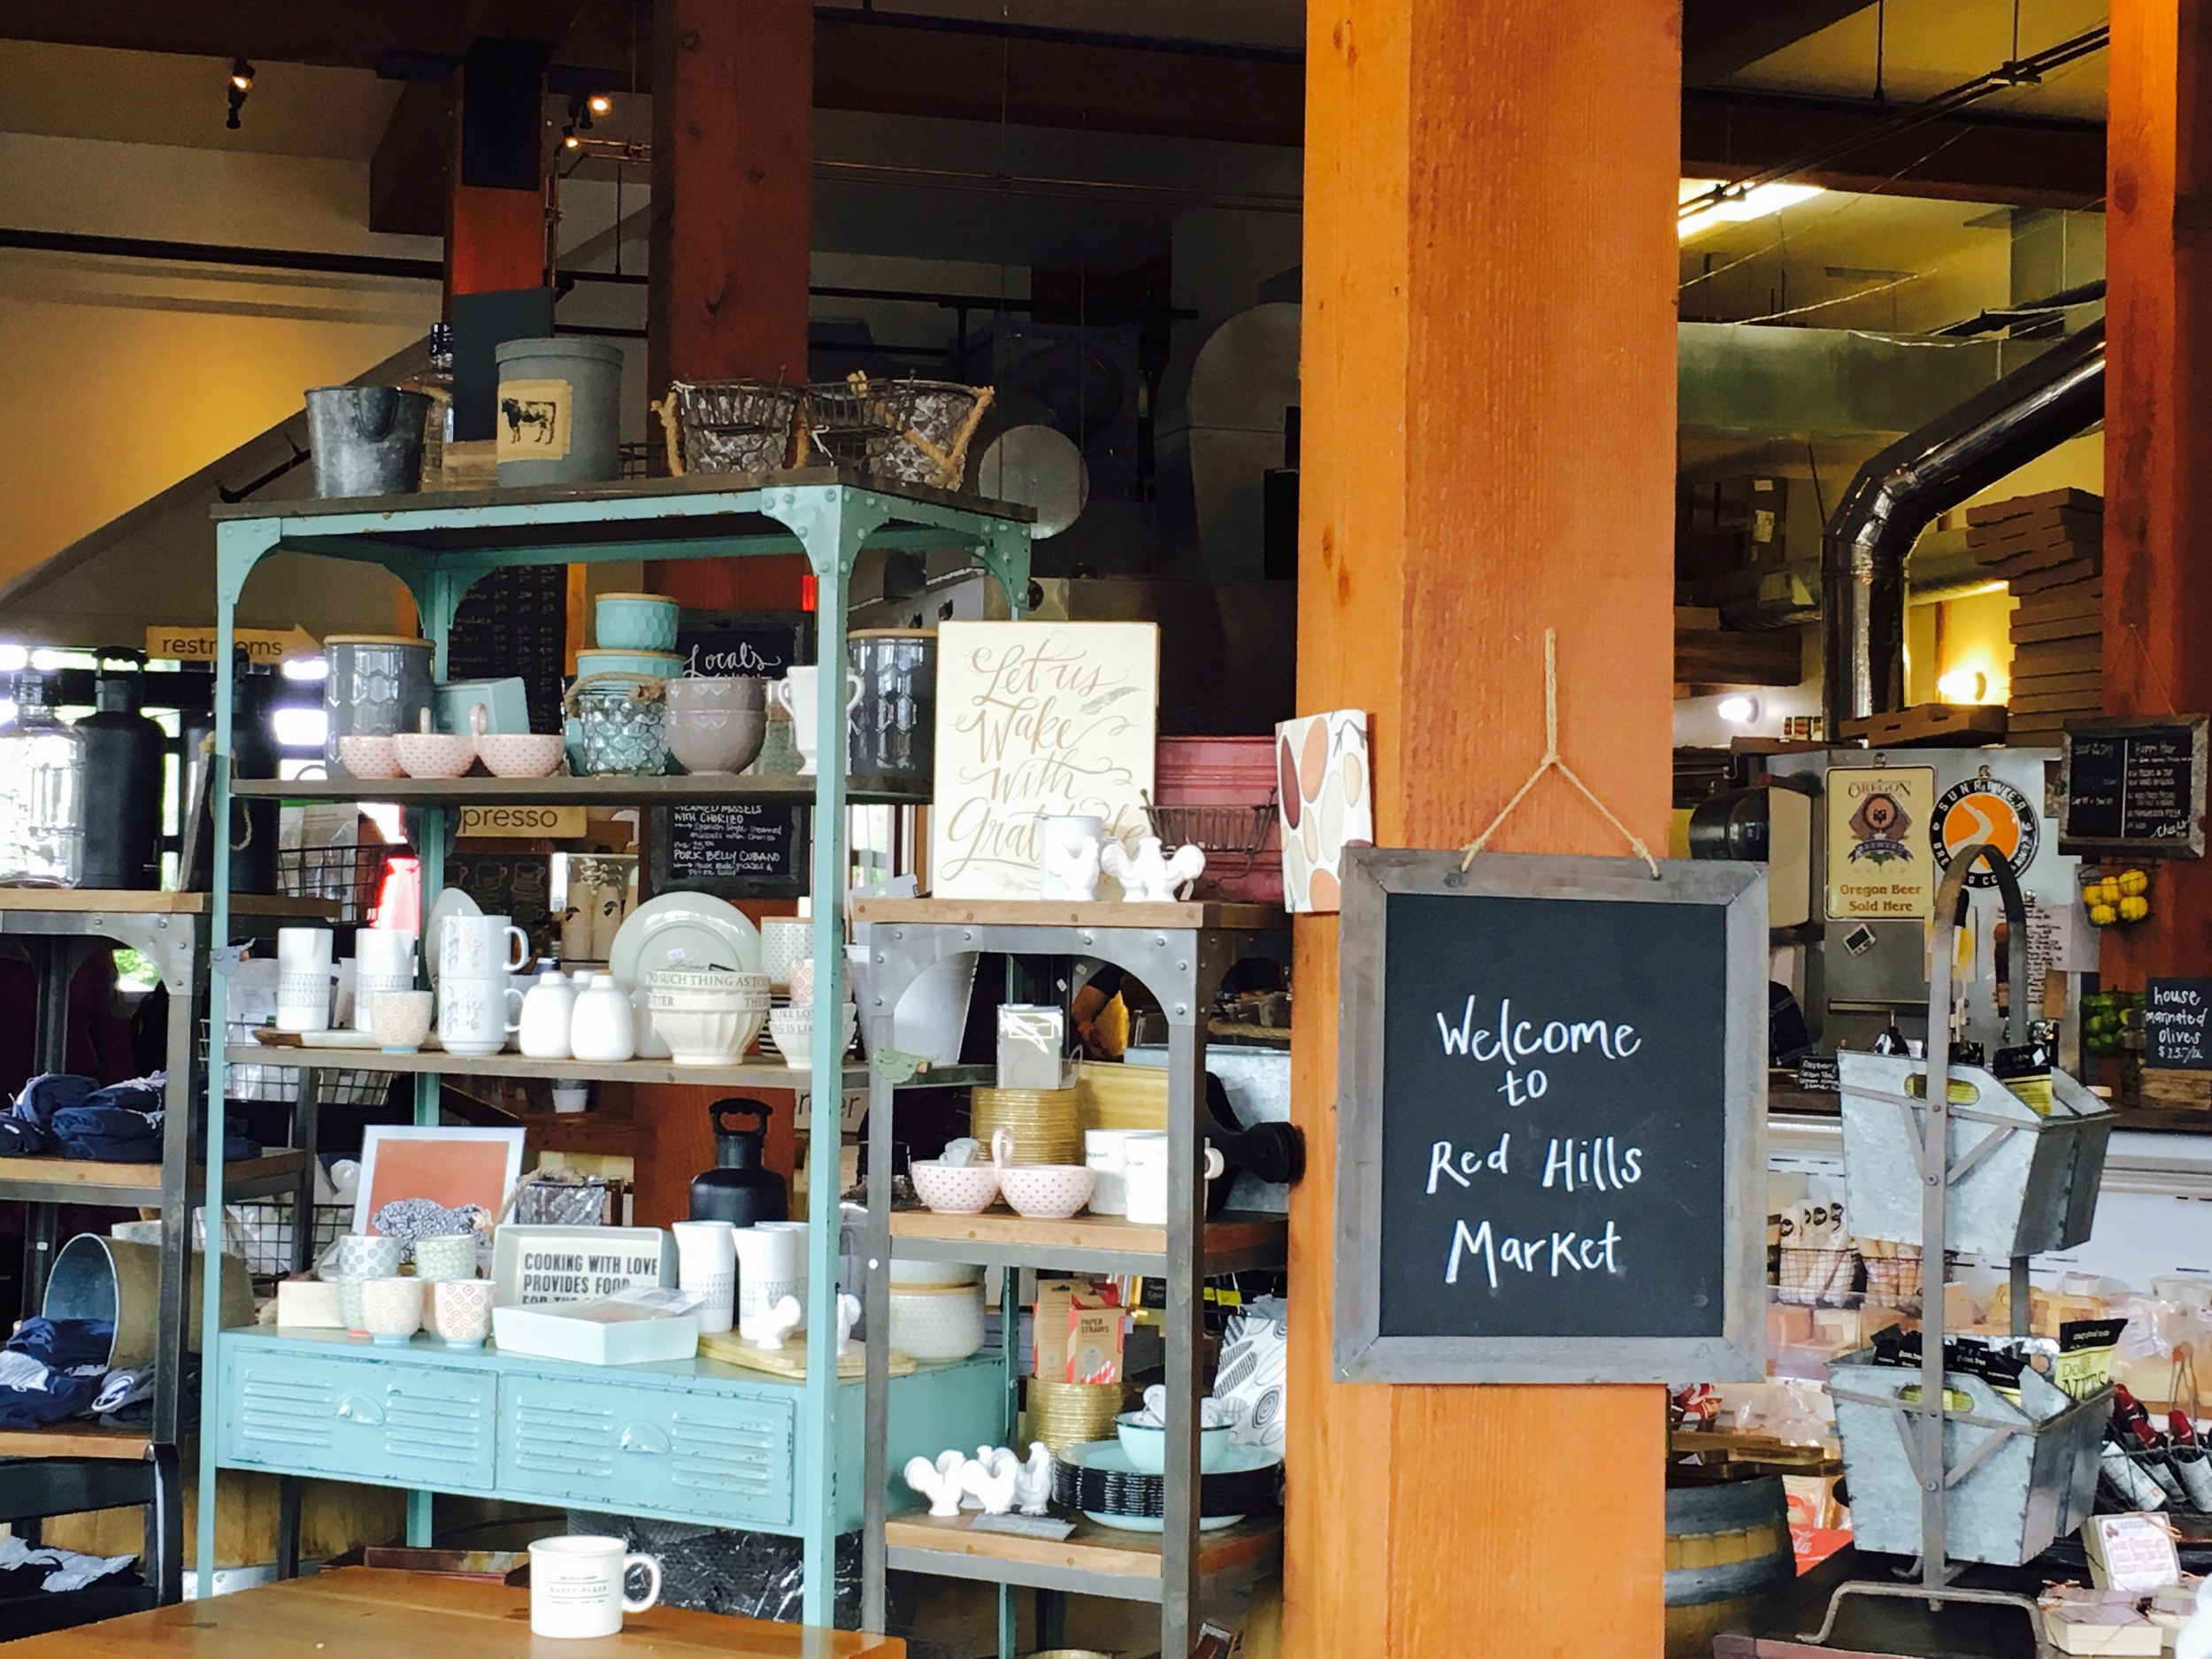 Welcome to Red Hills Market